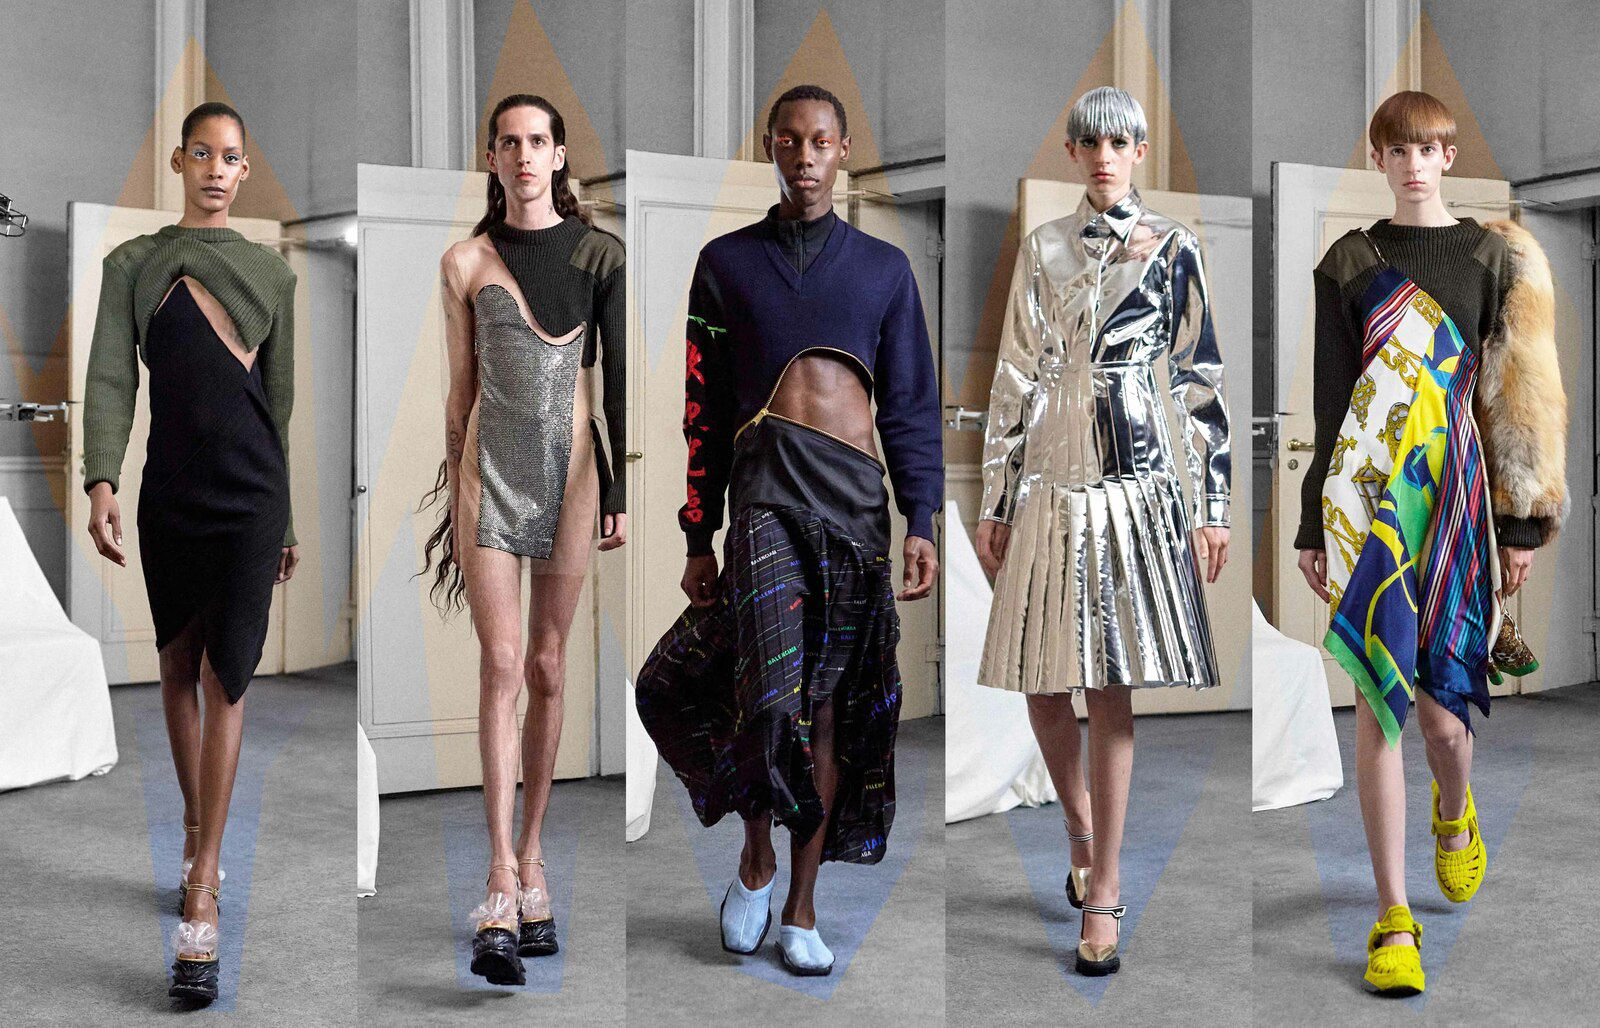 DURAN LANTINK SSFW 2021 READY-TO-WEAR INAUGURAL COLLECTION